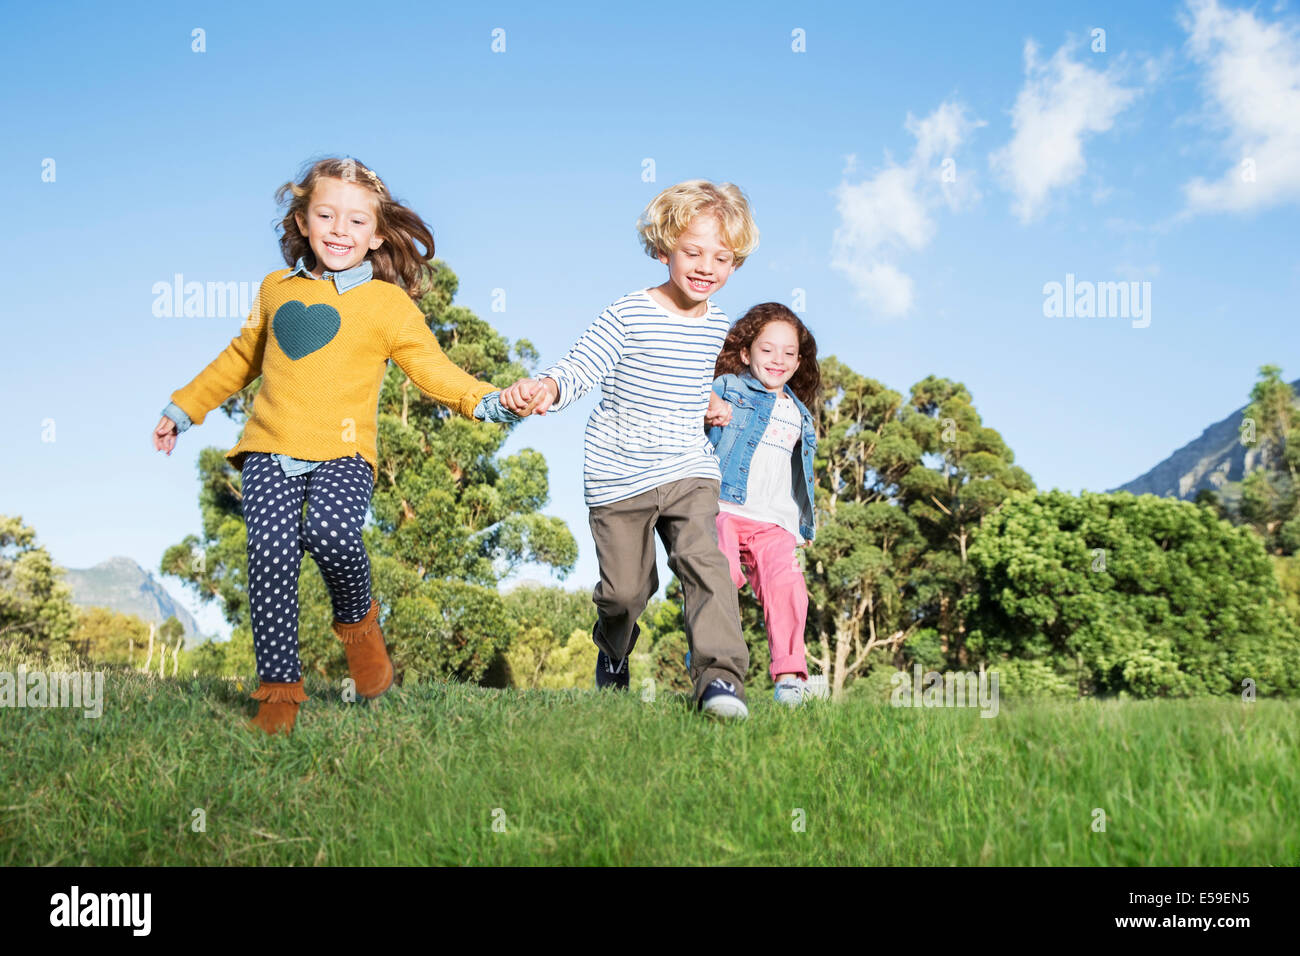 Children holding hands in field - Stock Image